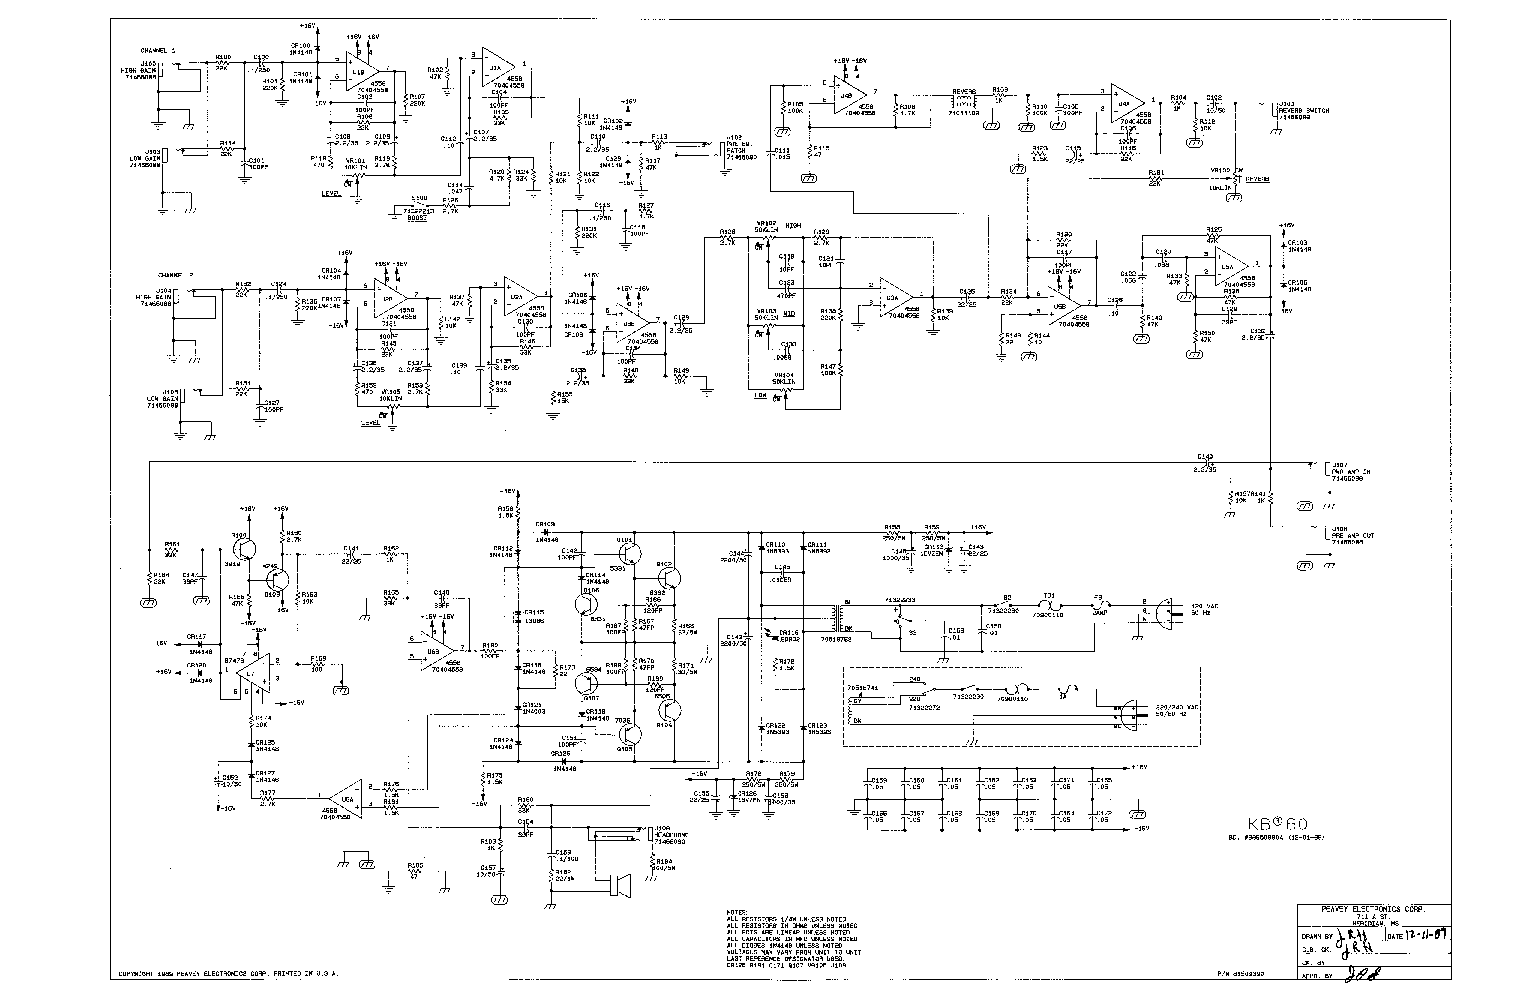 peavey t60 wiring diagram Schematics and Wiring Diagrams – Peavey T 60 Wiring Diagram